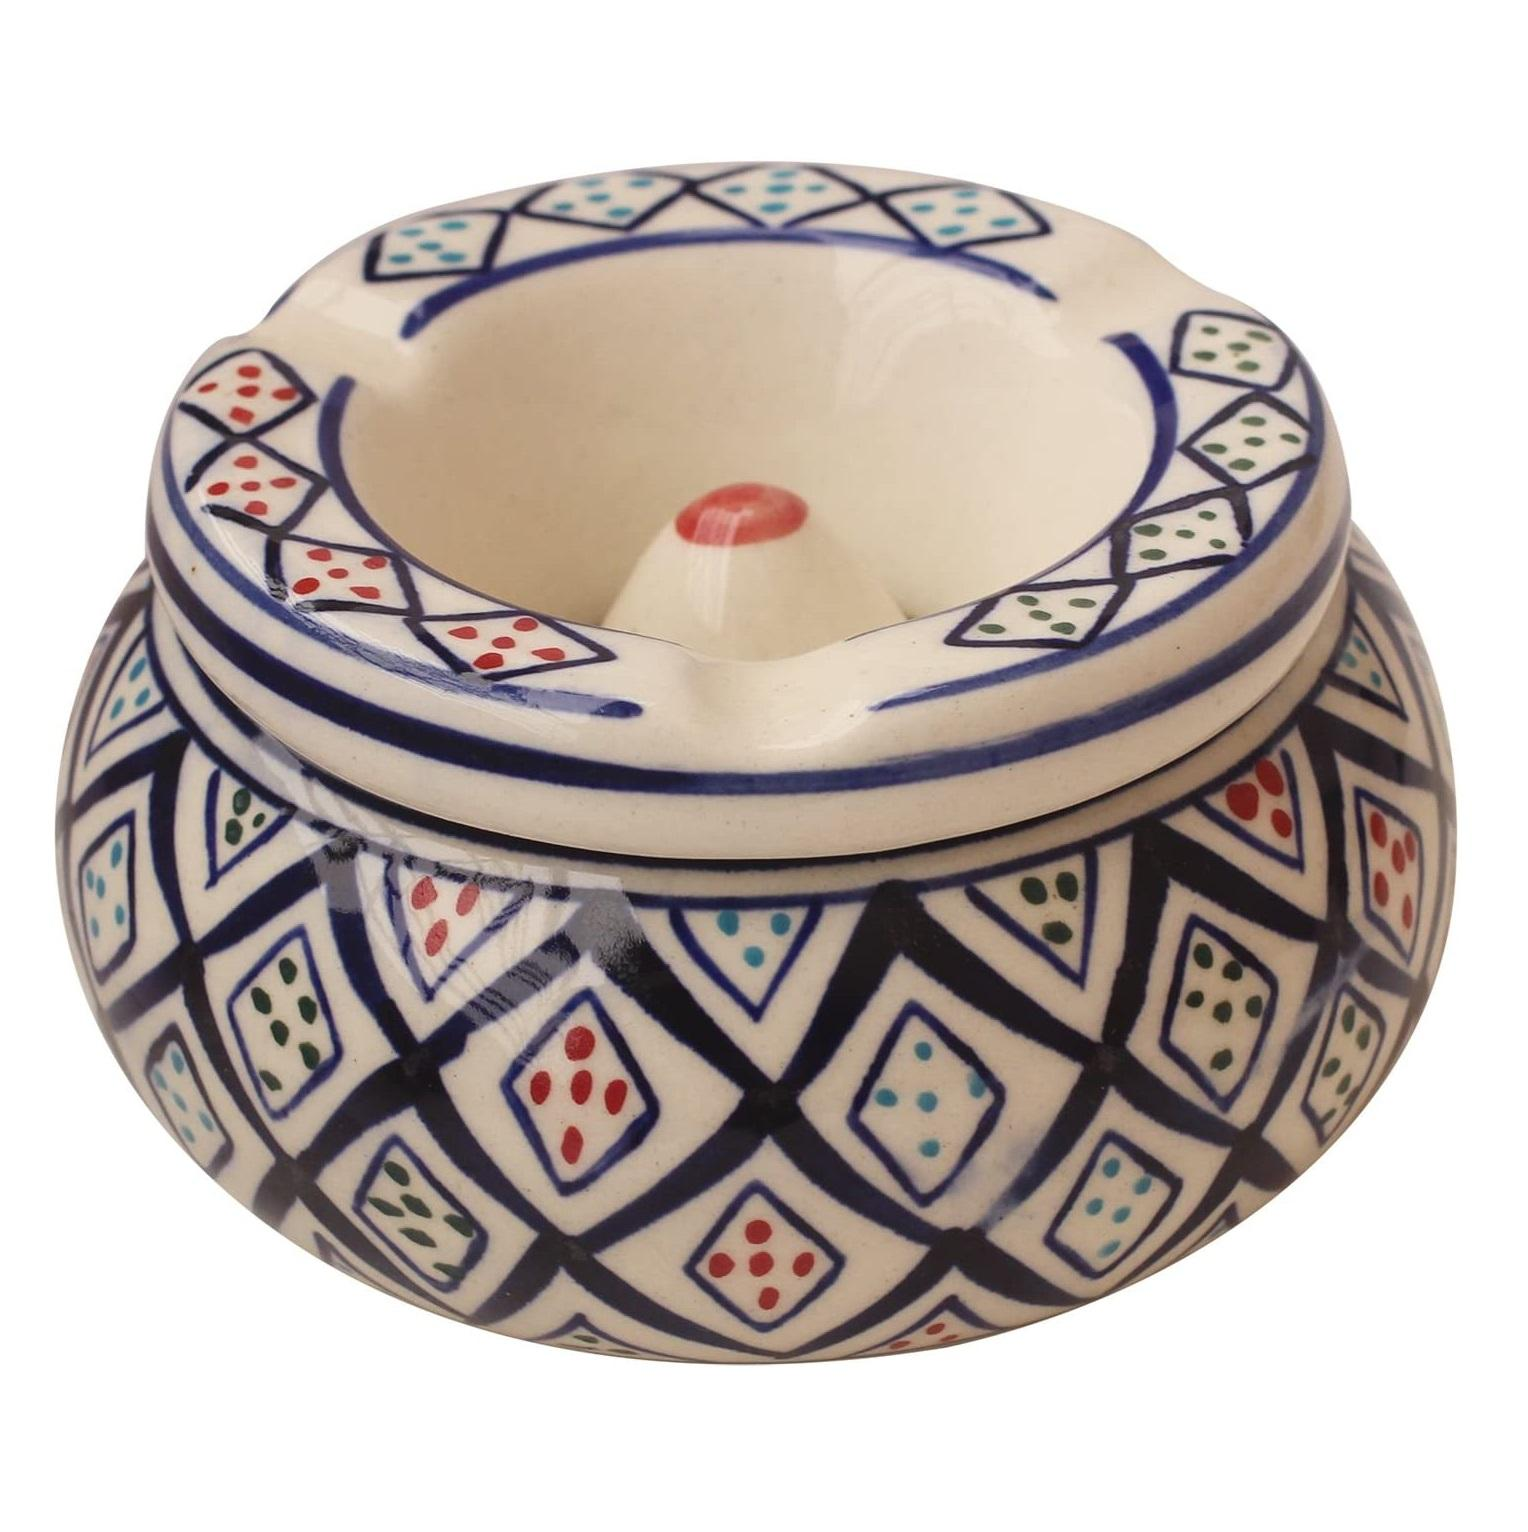 Ceramic abhandicrafts, Outdoors and Indoors Desktop Ashtray, for Home and Office Decoration